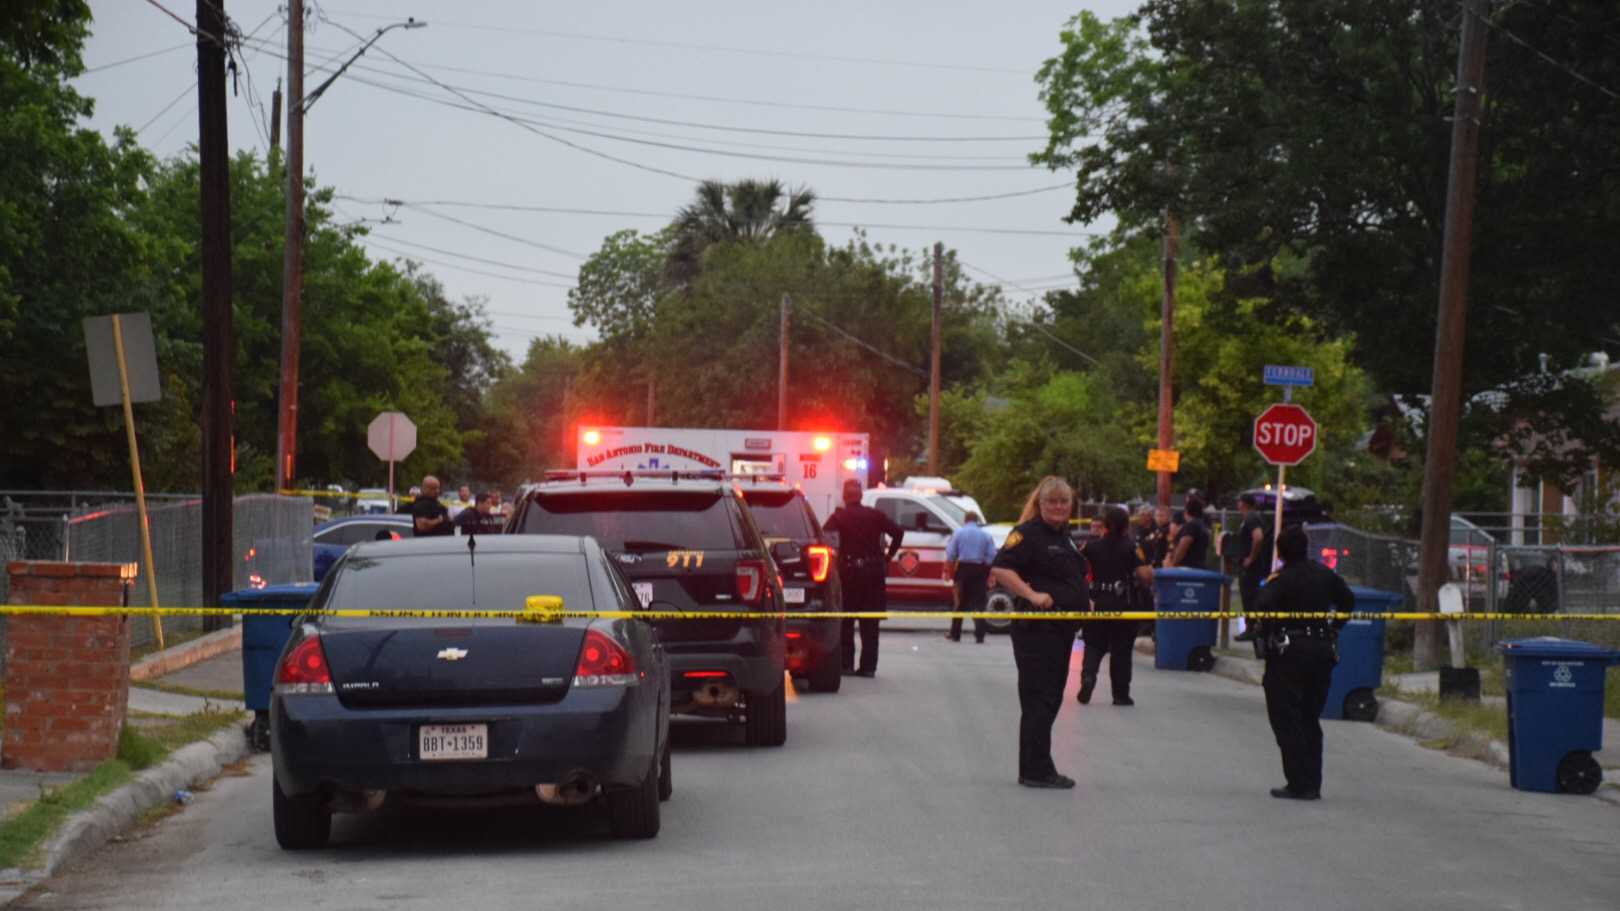 One person was fatally shot by a Department of Homeland Security agent in San Antonio on Tuesday, May 1, 2018.